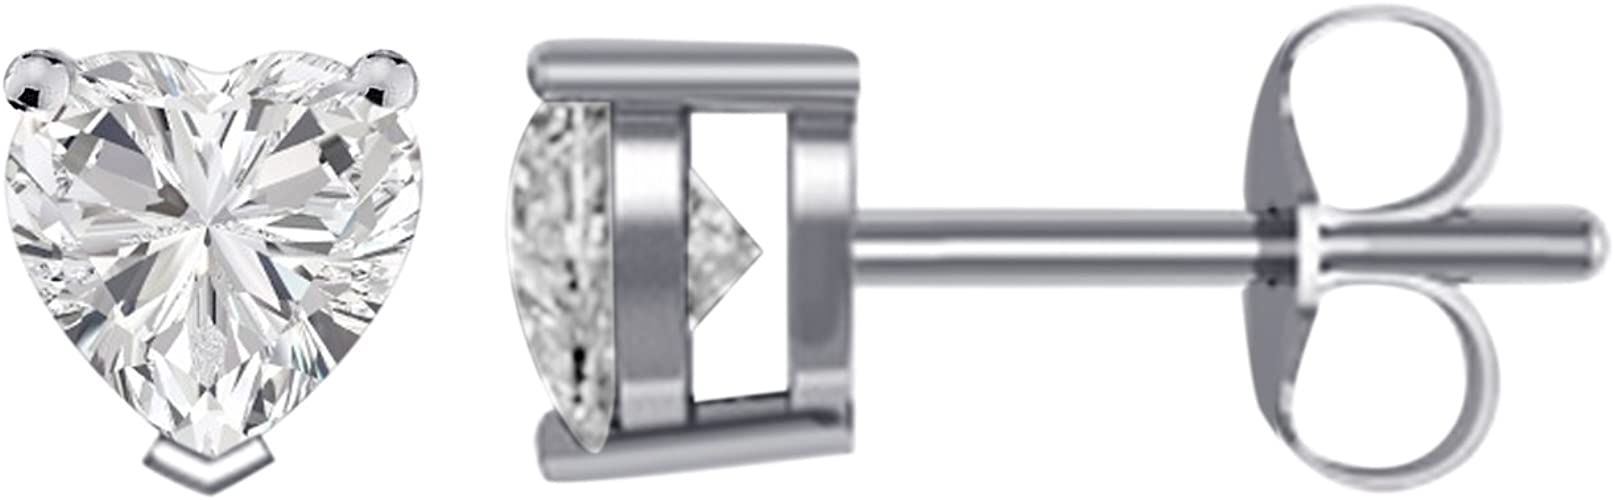 14K White Gold Plated CZ Stud Earrings Simulated Diamond Heart Cubic Zirconia Ear Stud Set 4mm To 8mm